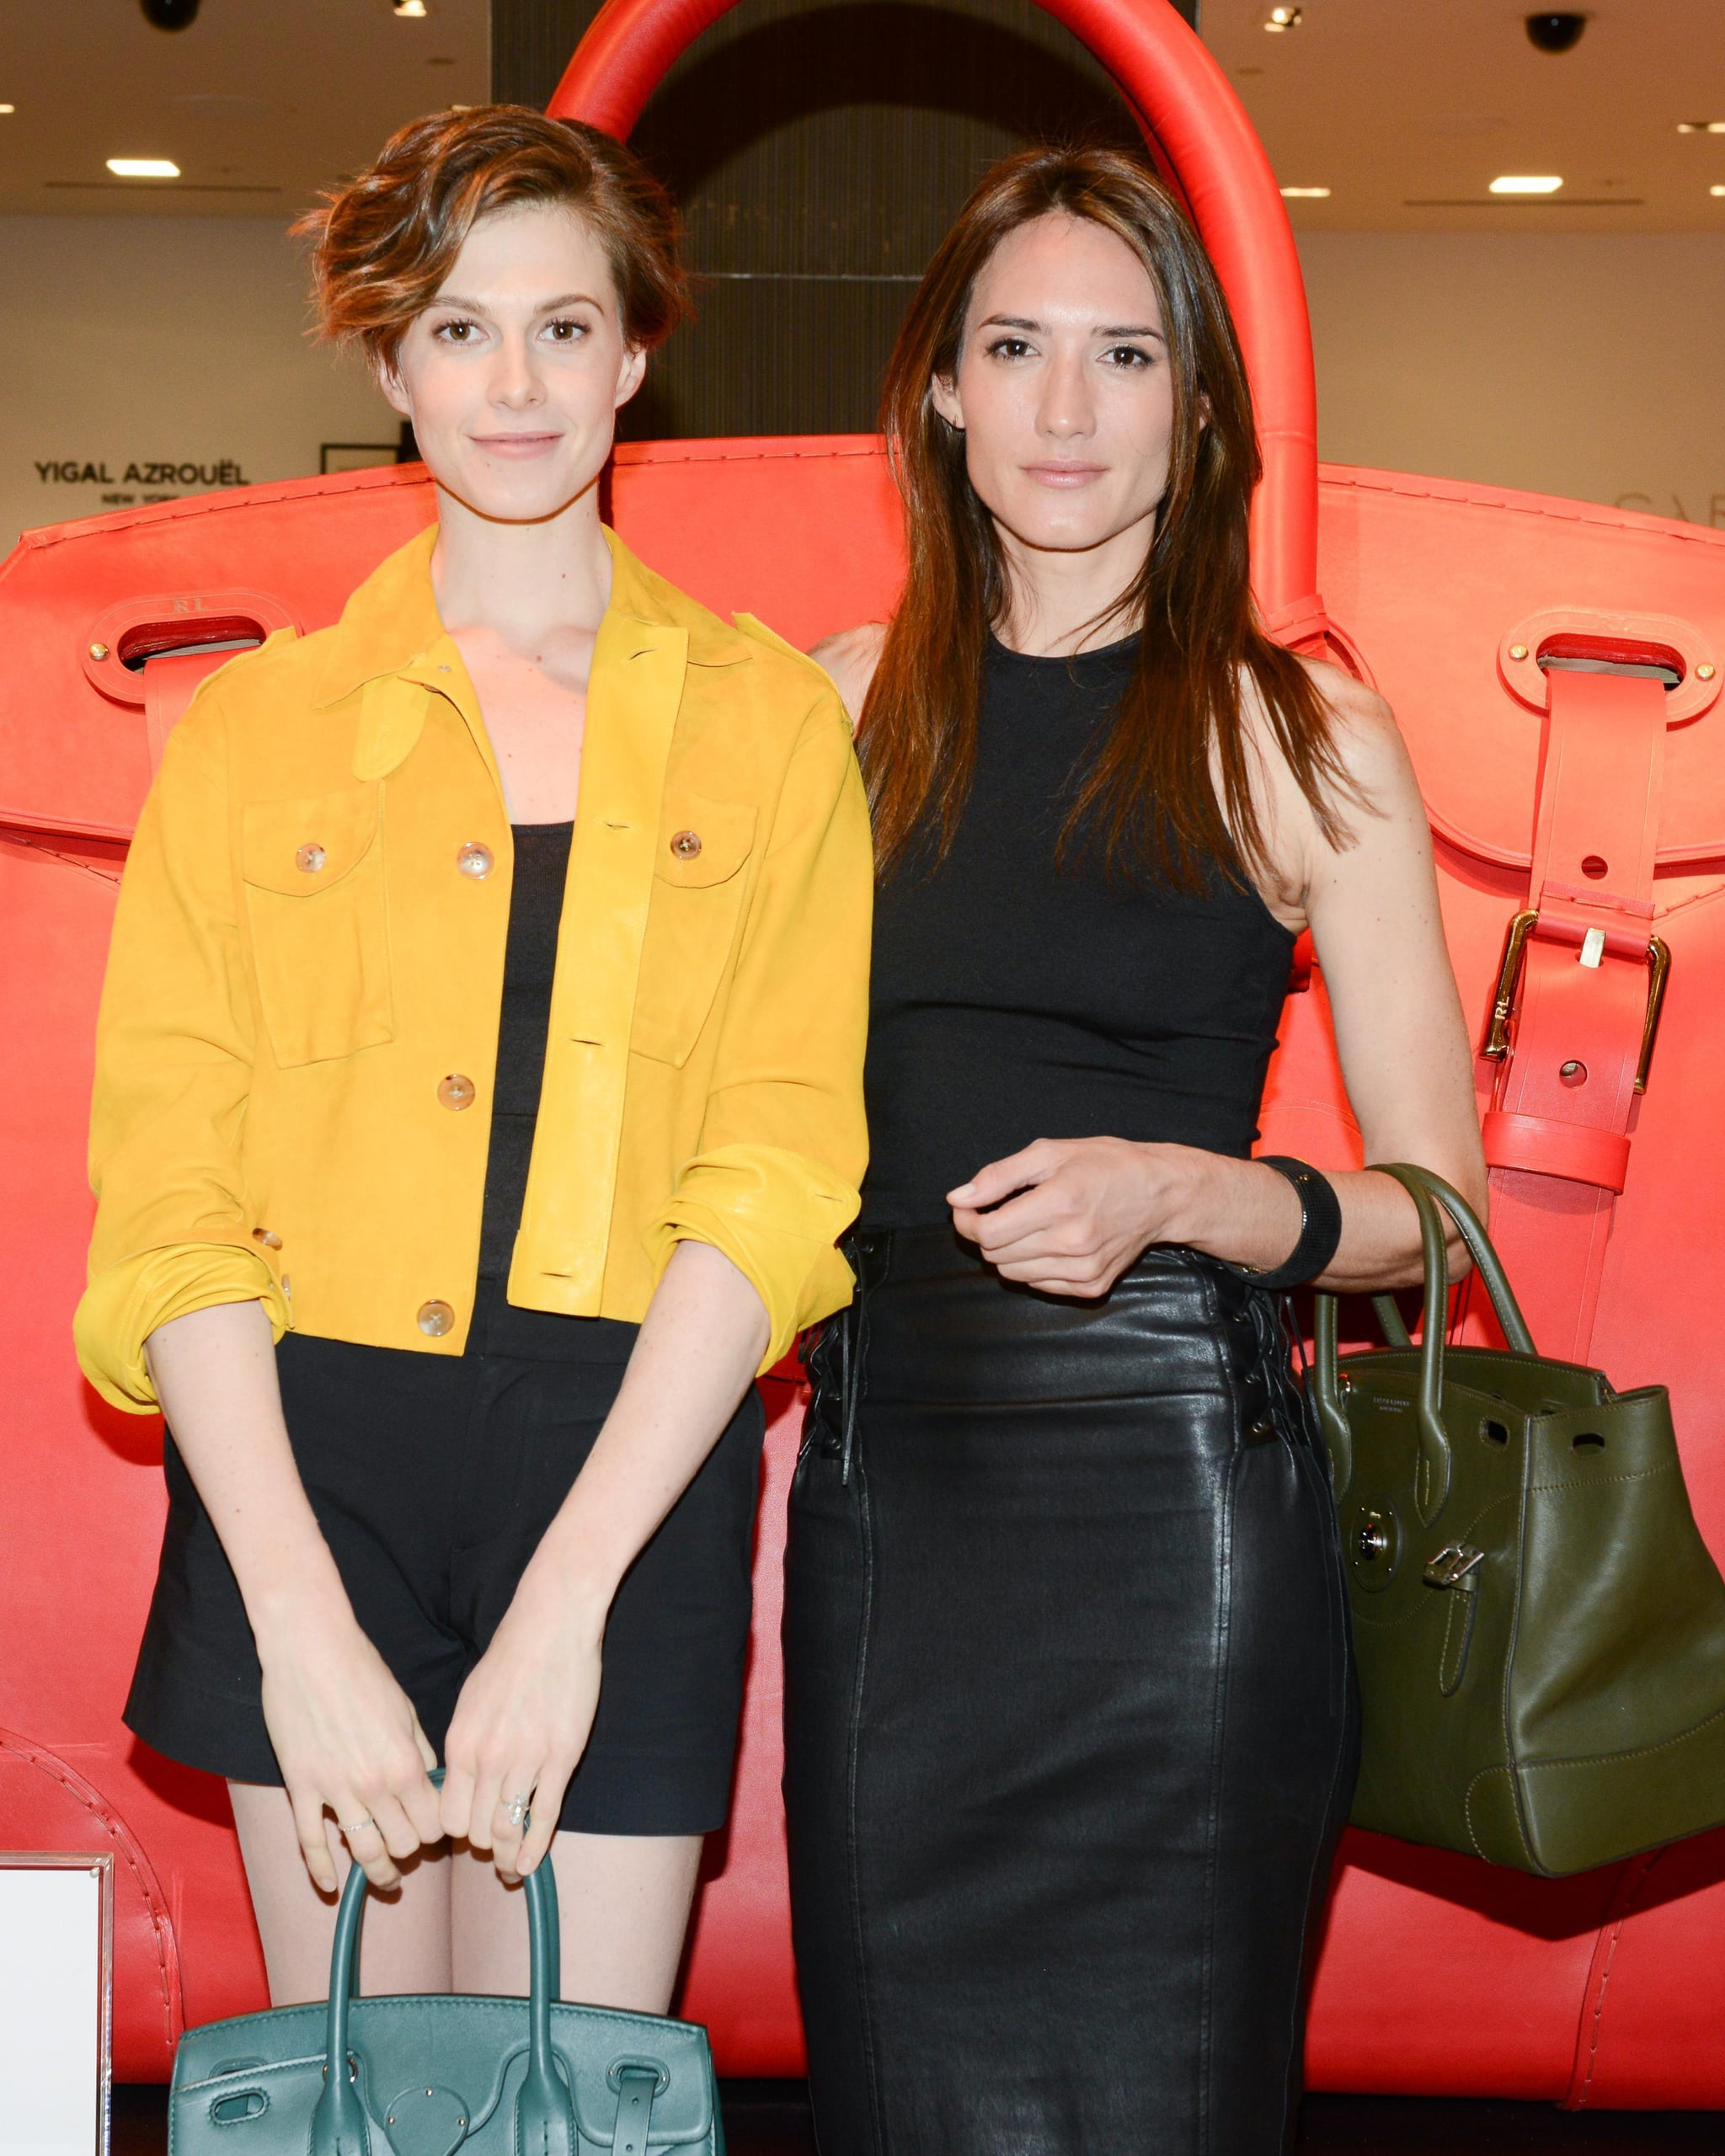 Elettra Wiedemann and Zani Gugelmann helped celebrate the colorful world of Ralph Lauren's Ricky Bag at Saks.